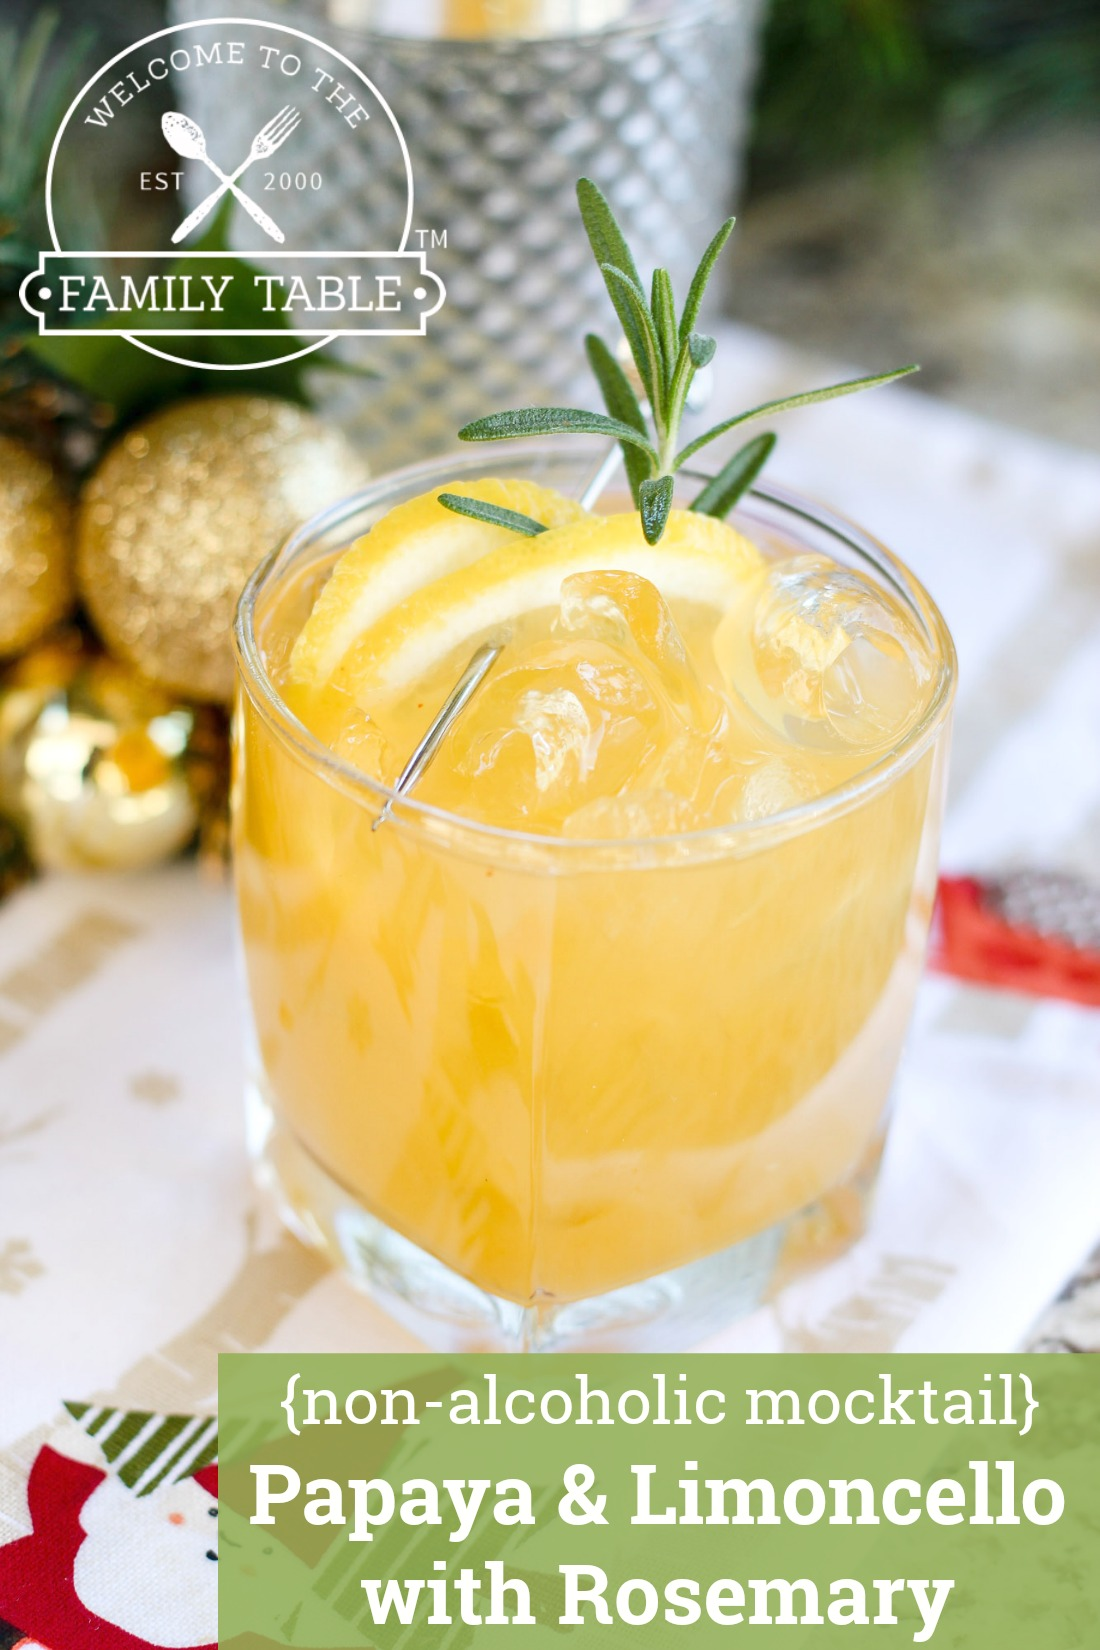 Papaya & Limoncello with Rosemary Mocktail